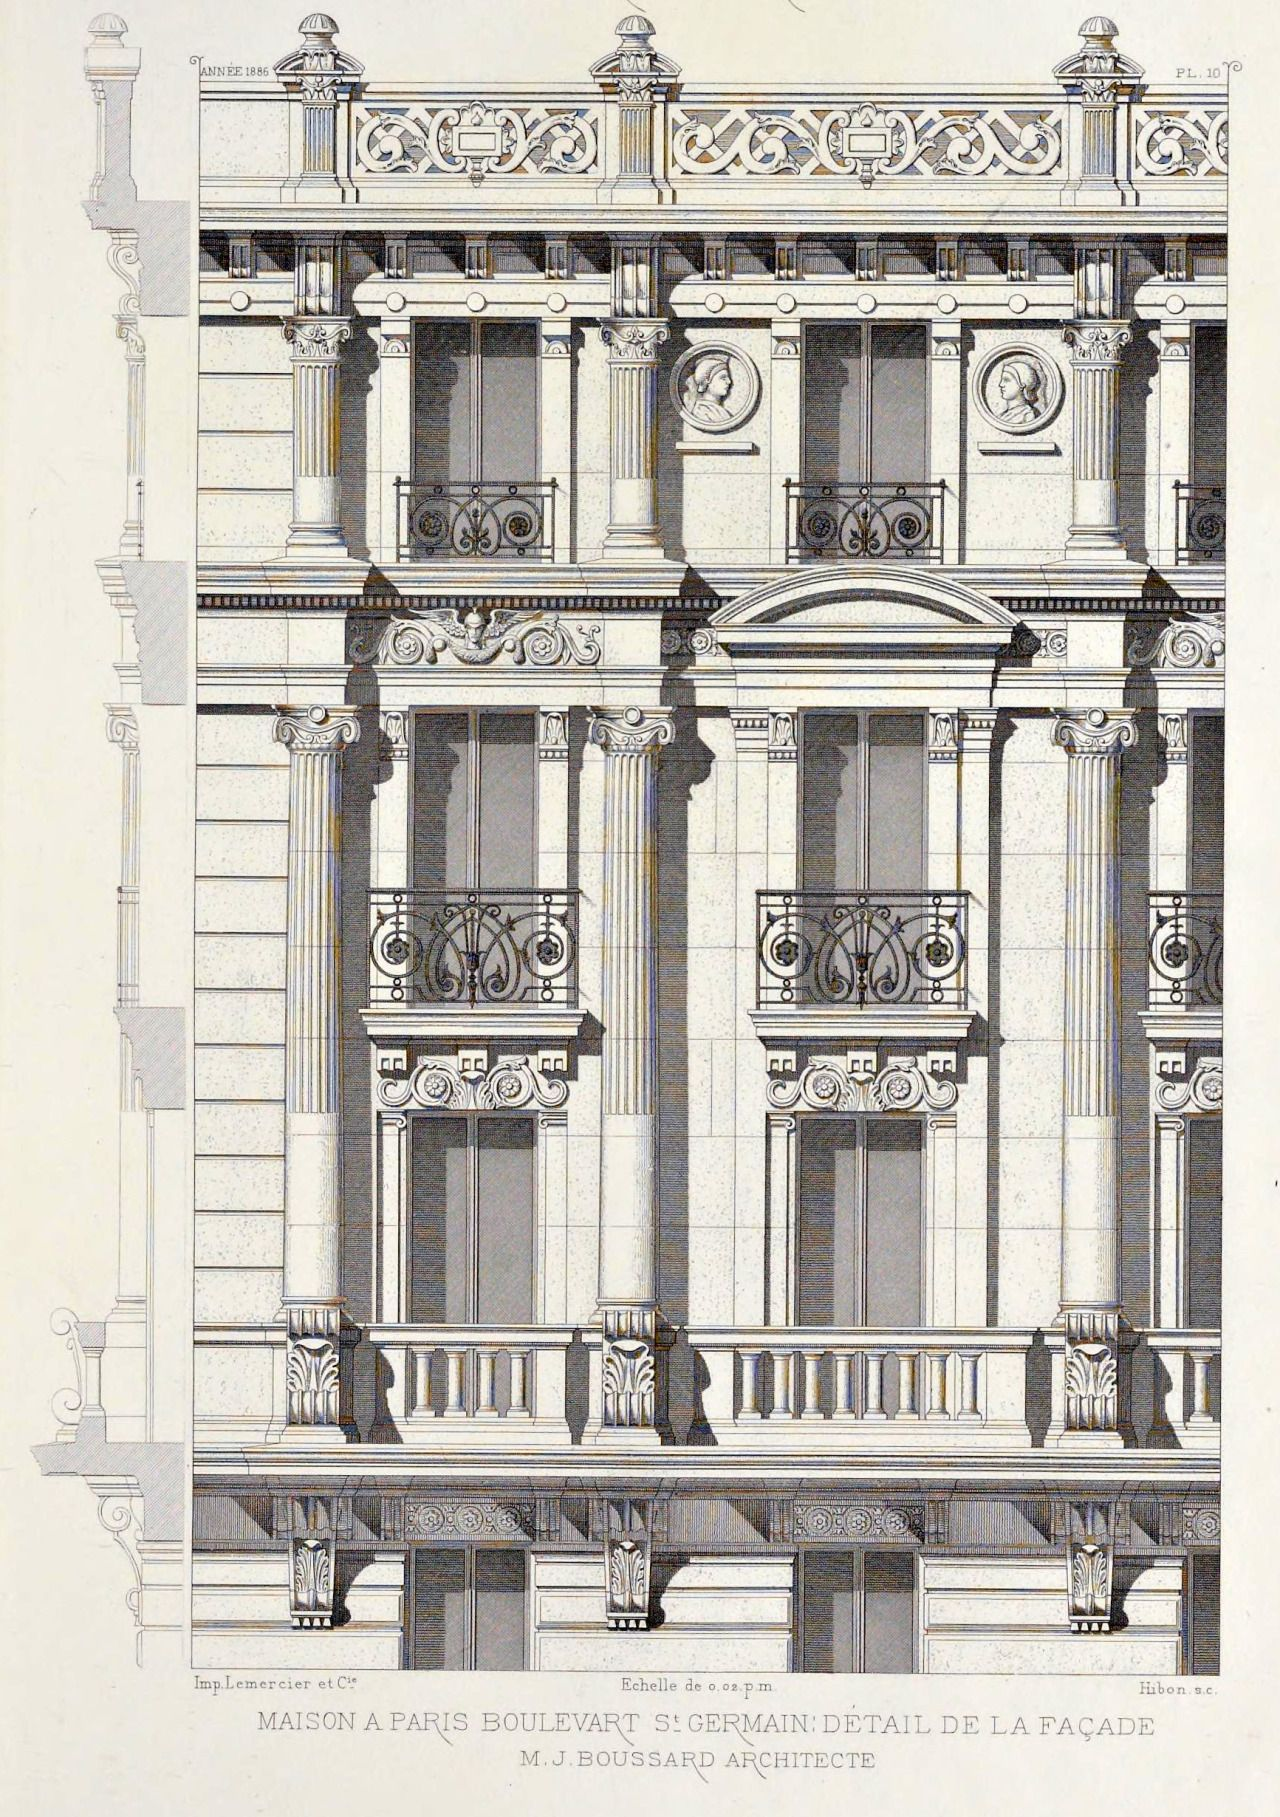 Apartment Building Elevation detail of elevation of an apartment building on boulevard saint